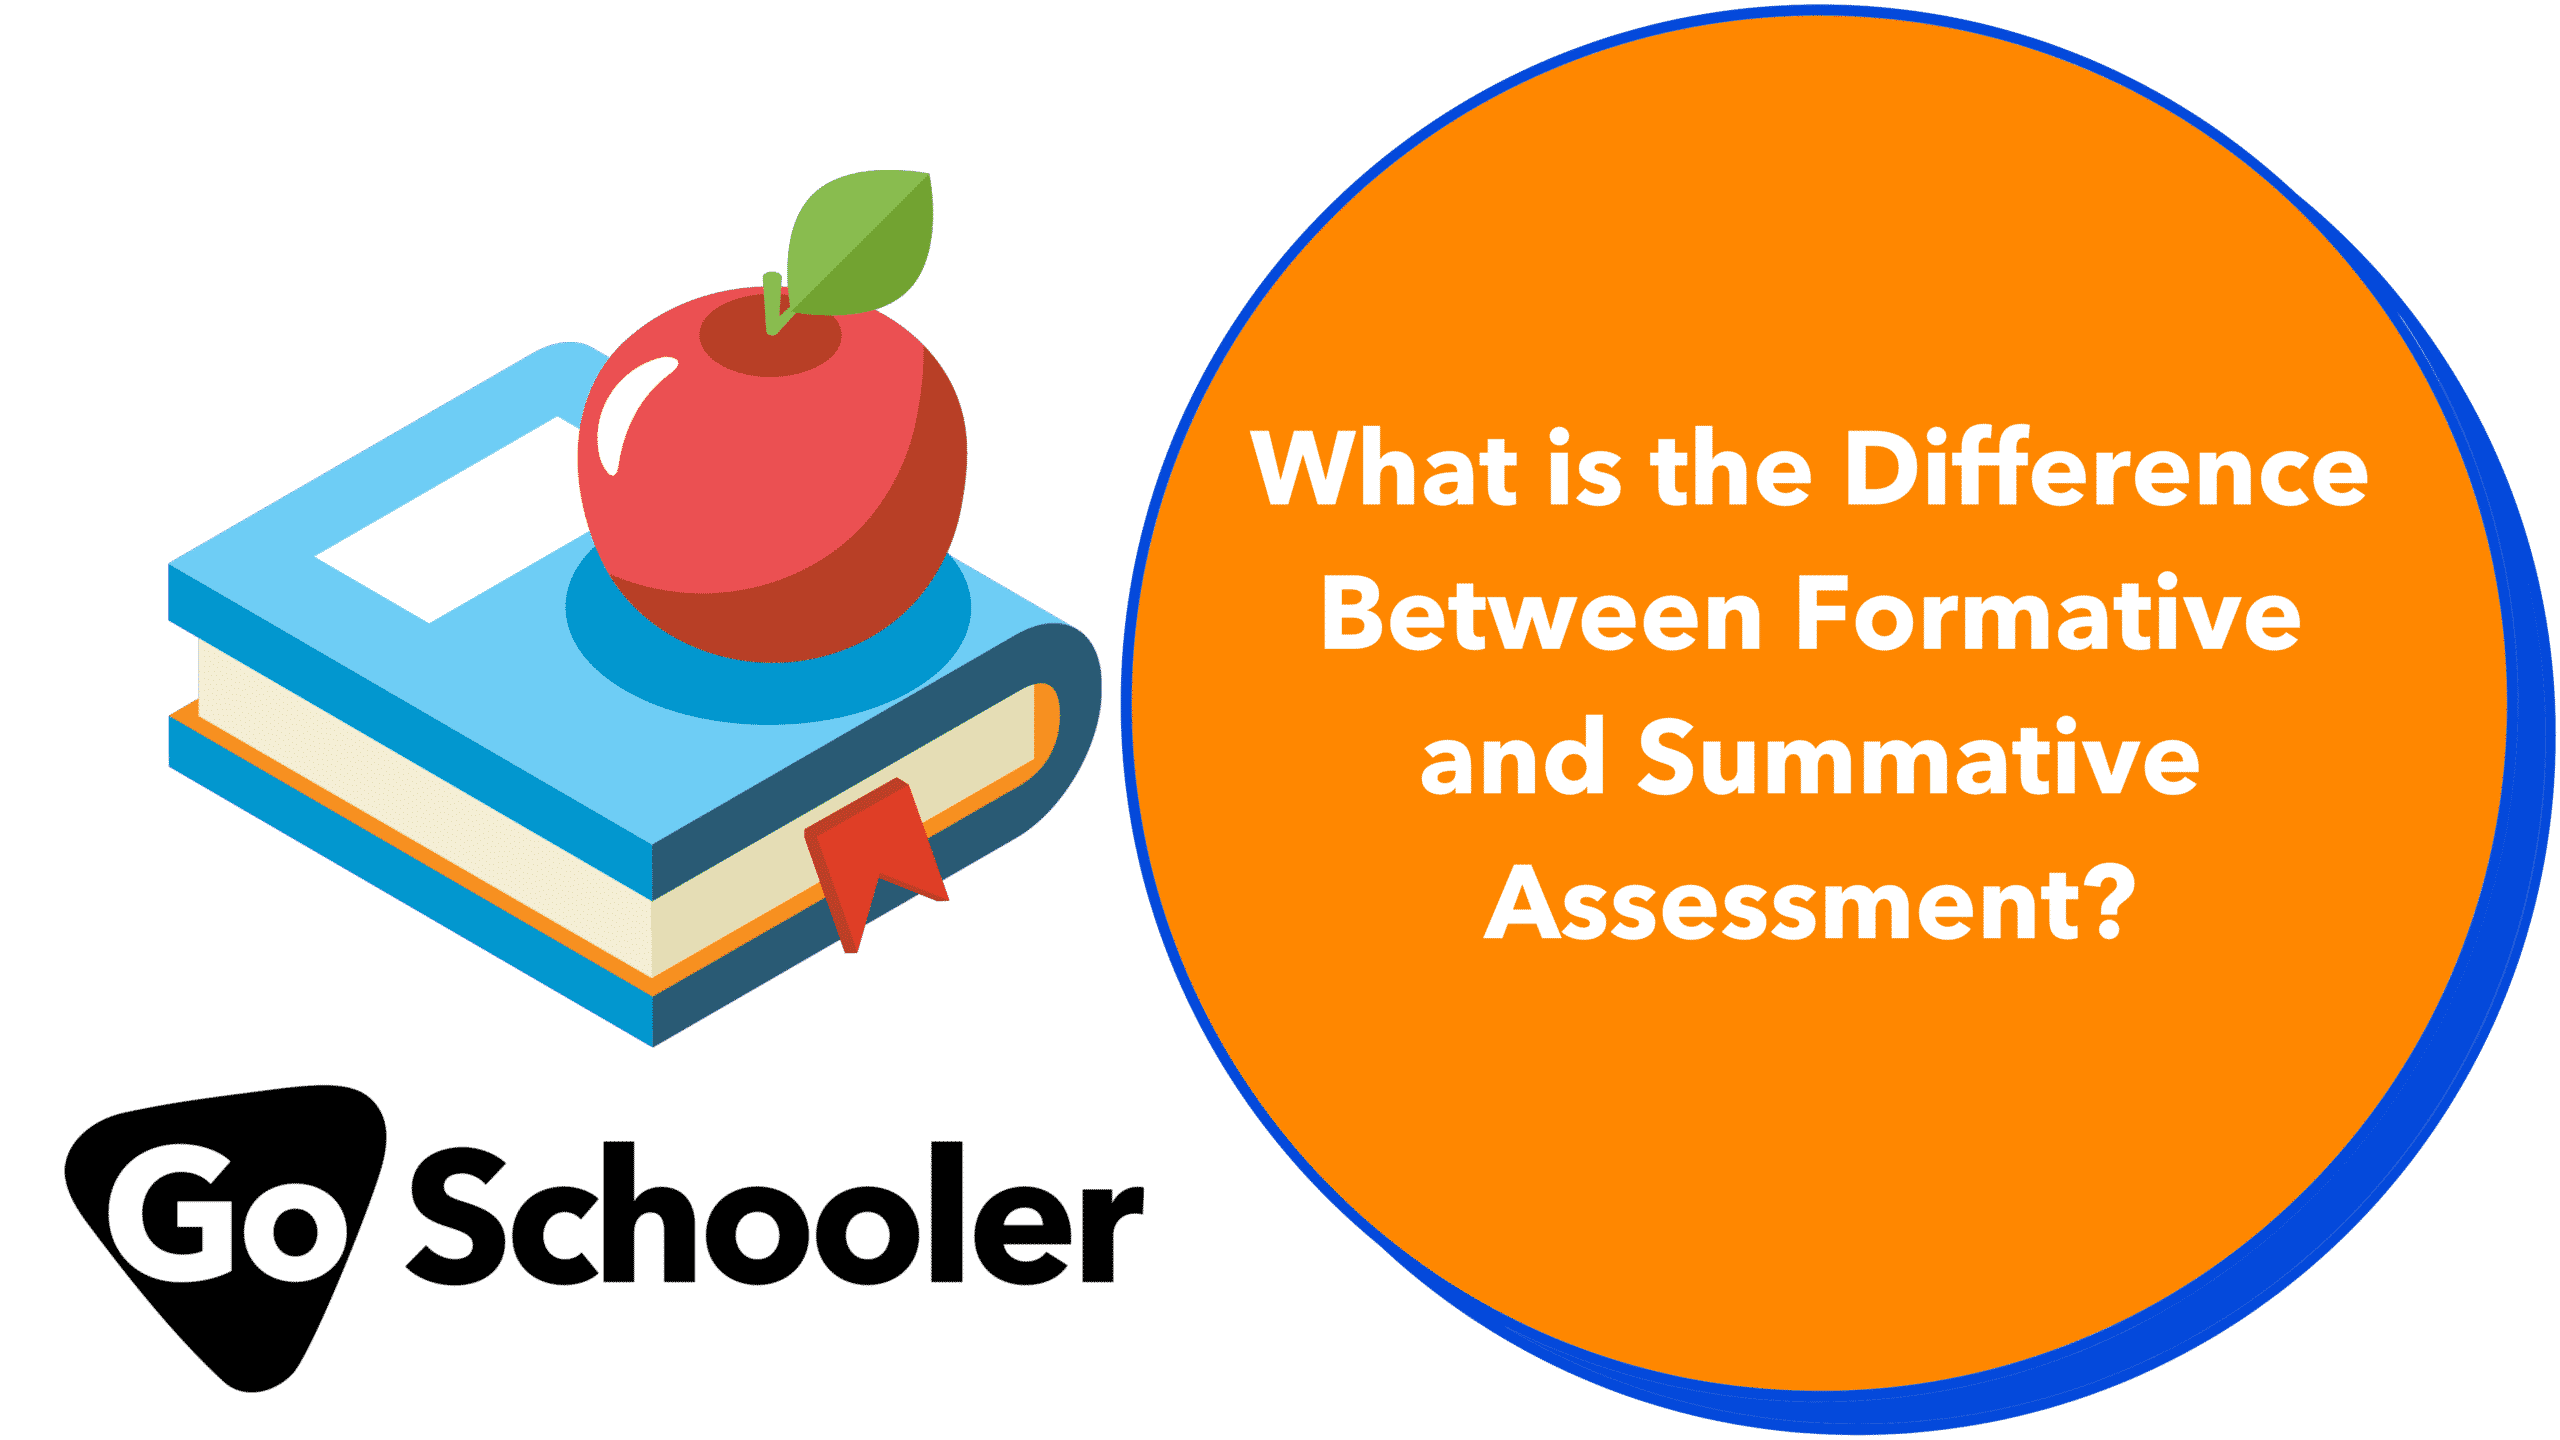 Difference Between Formative and Summative Assessment